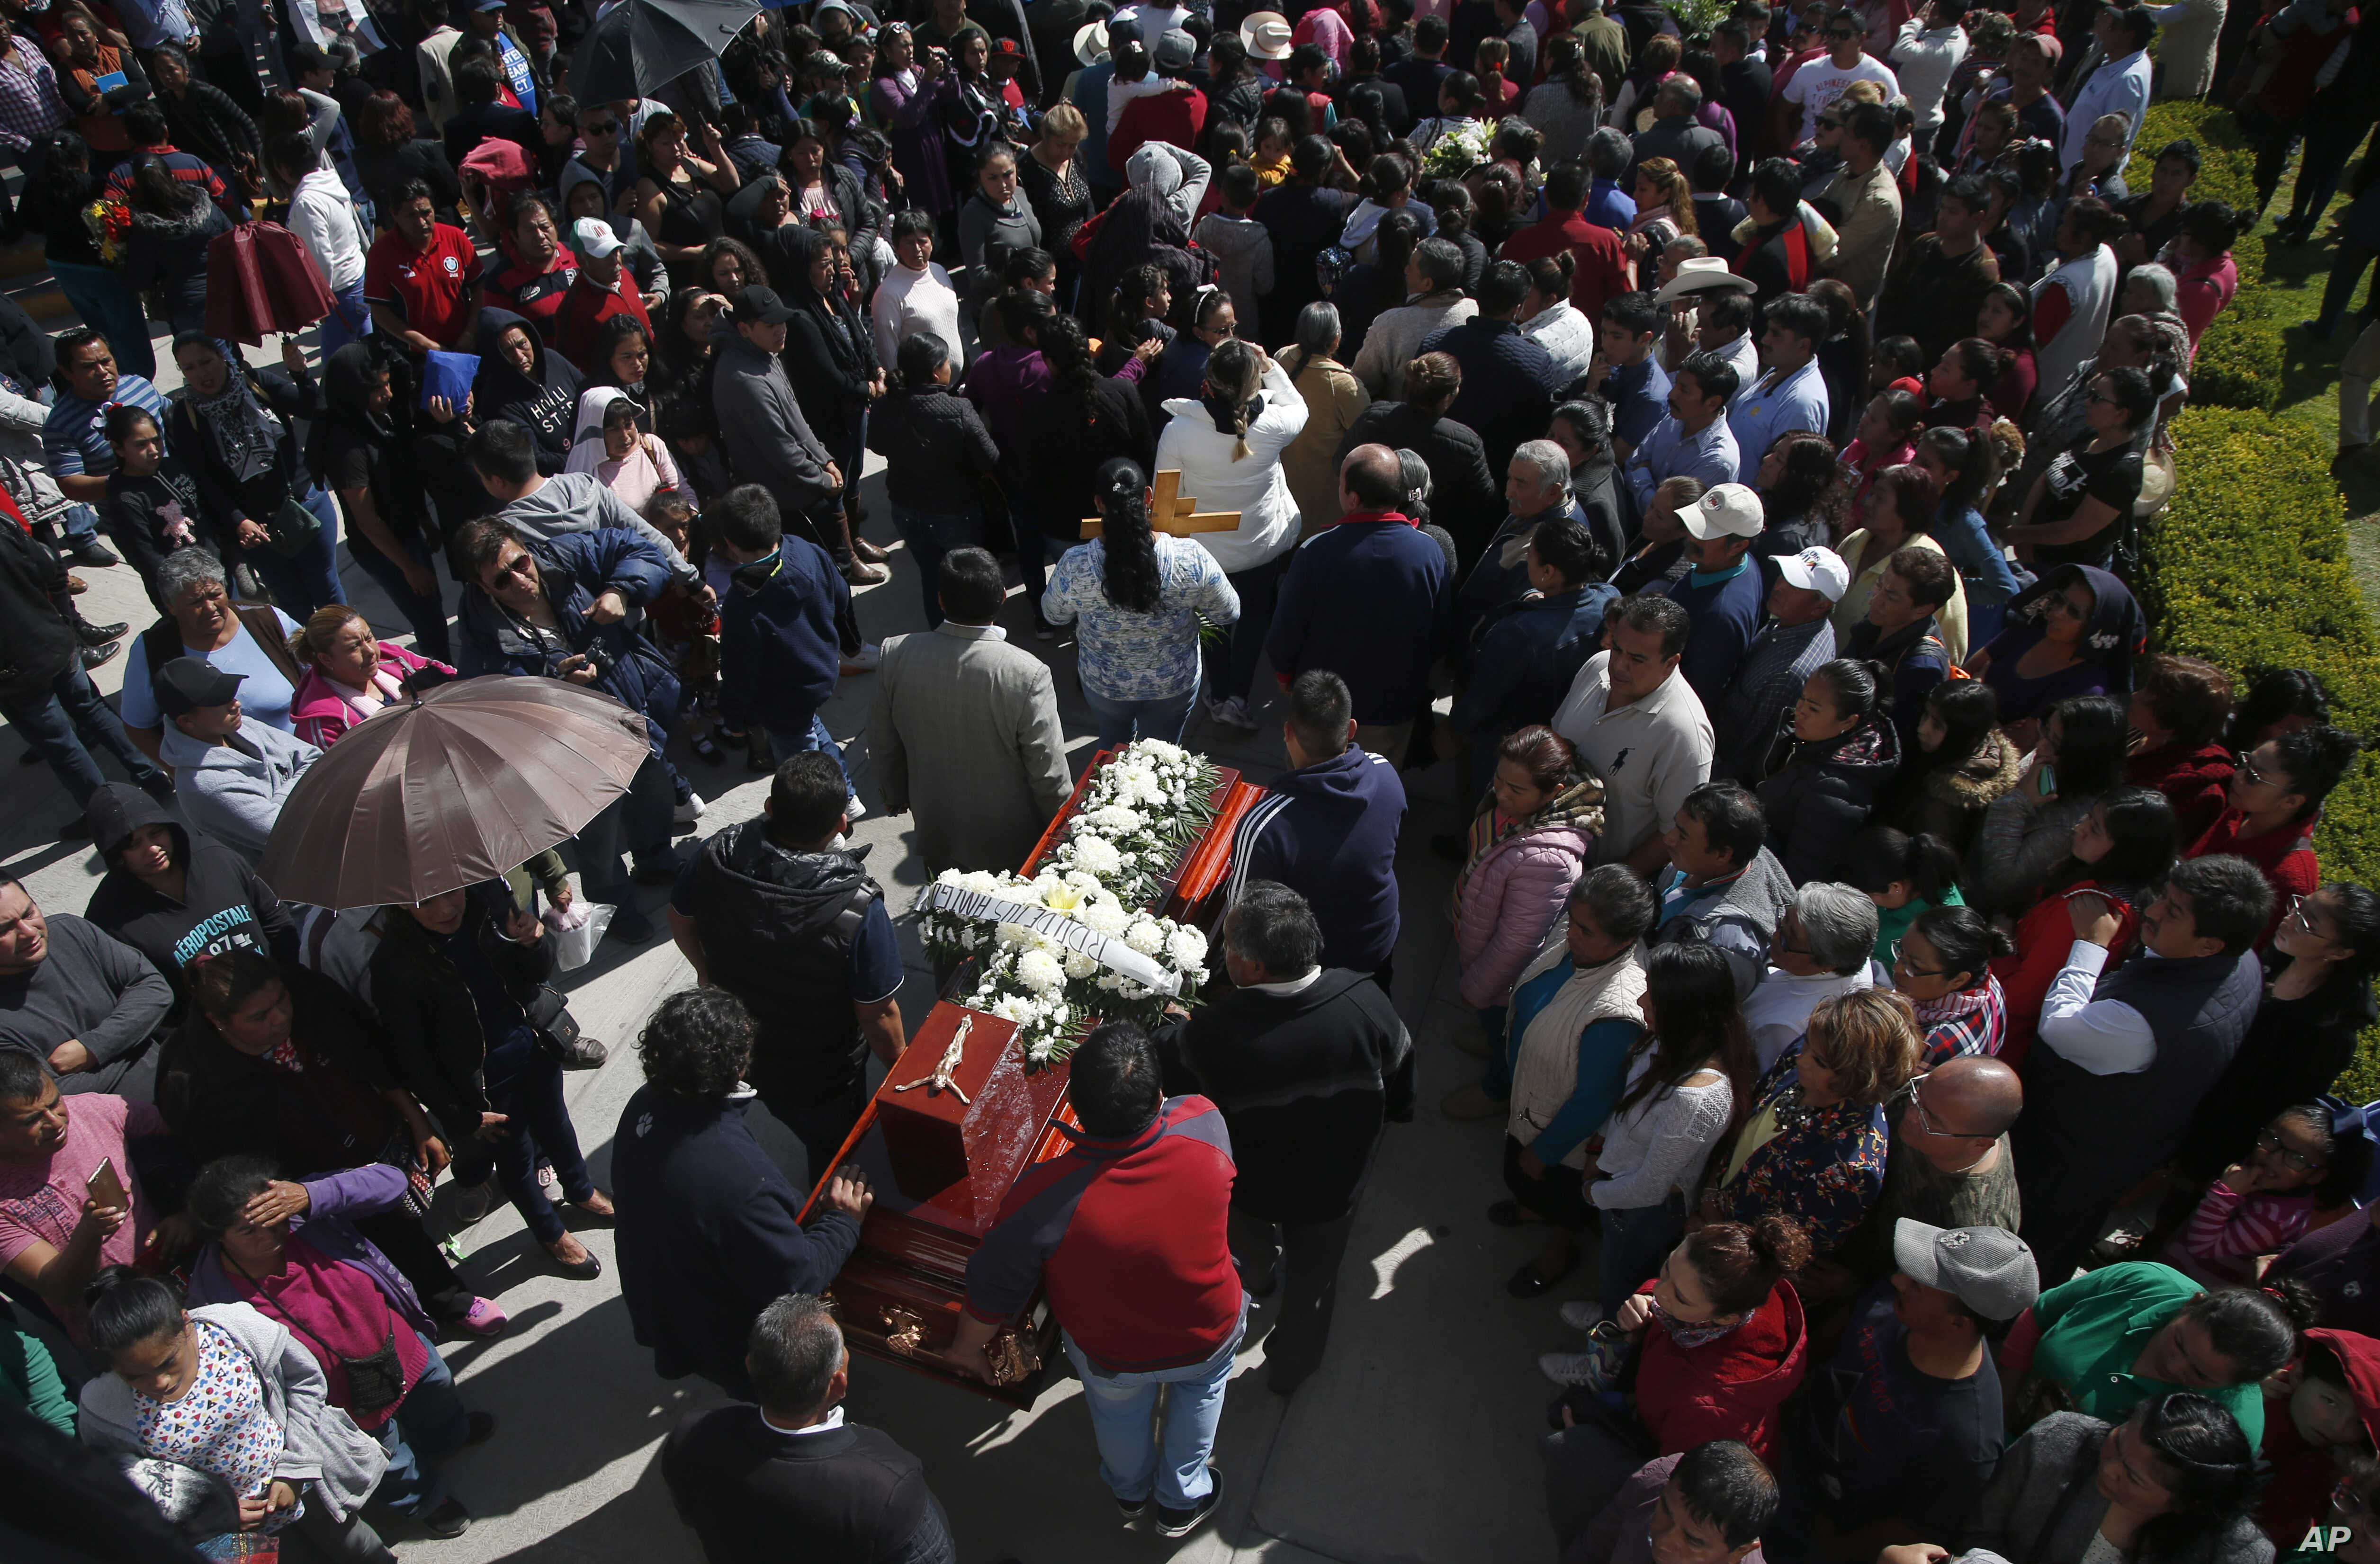 People hold a funeral for a person who died when a gas pipeline exploded in the village of Tlahuelilpan, Mexico, Jan. 20, 2019.